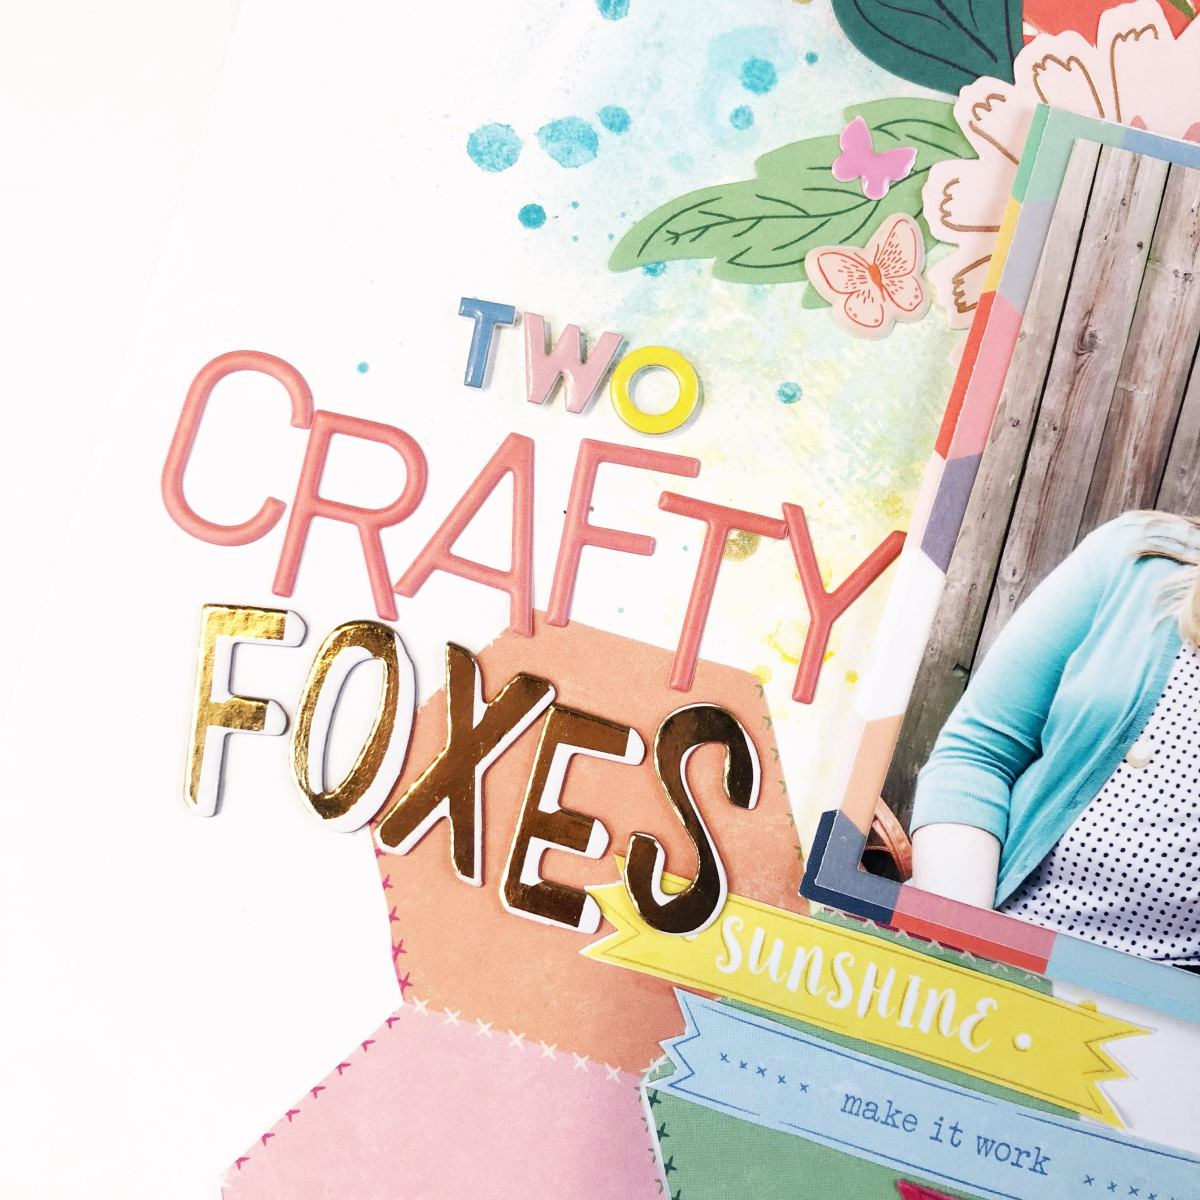 Two Crafty Foxes - Weekly Sketch | Tazhiana Gordon